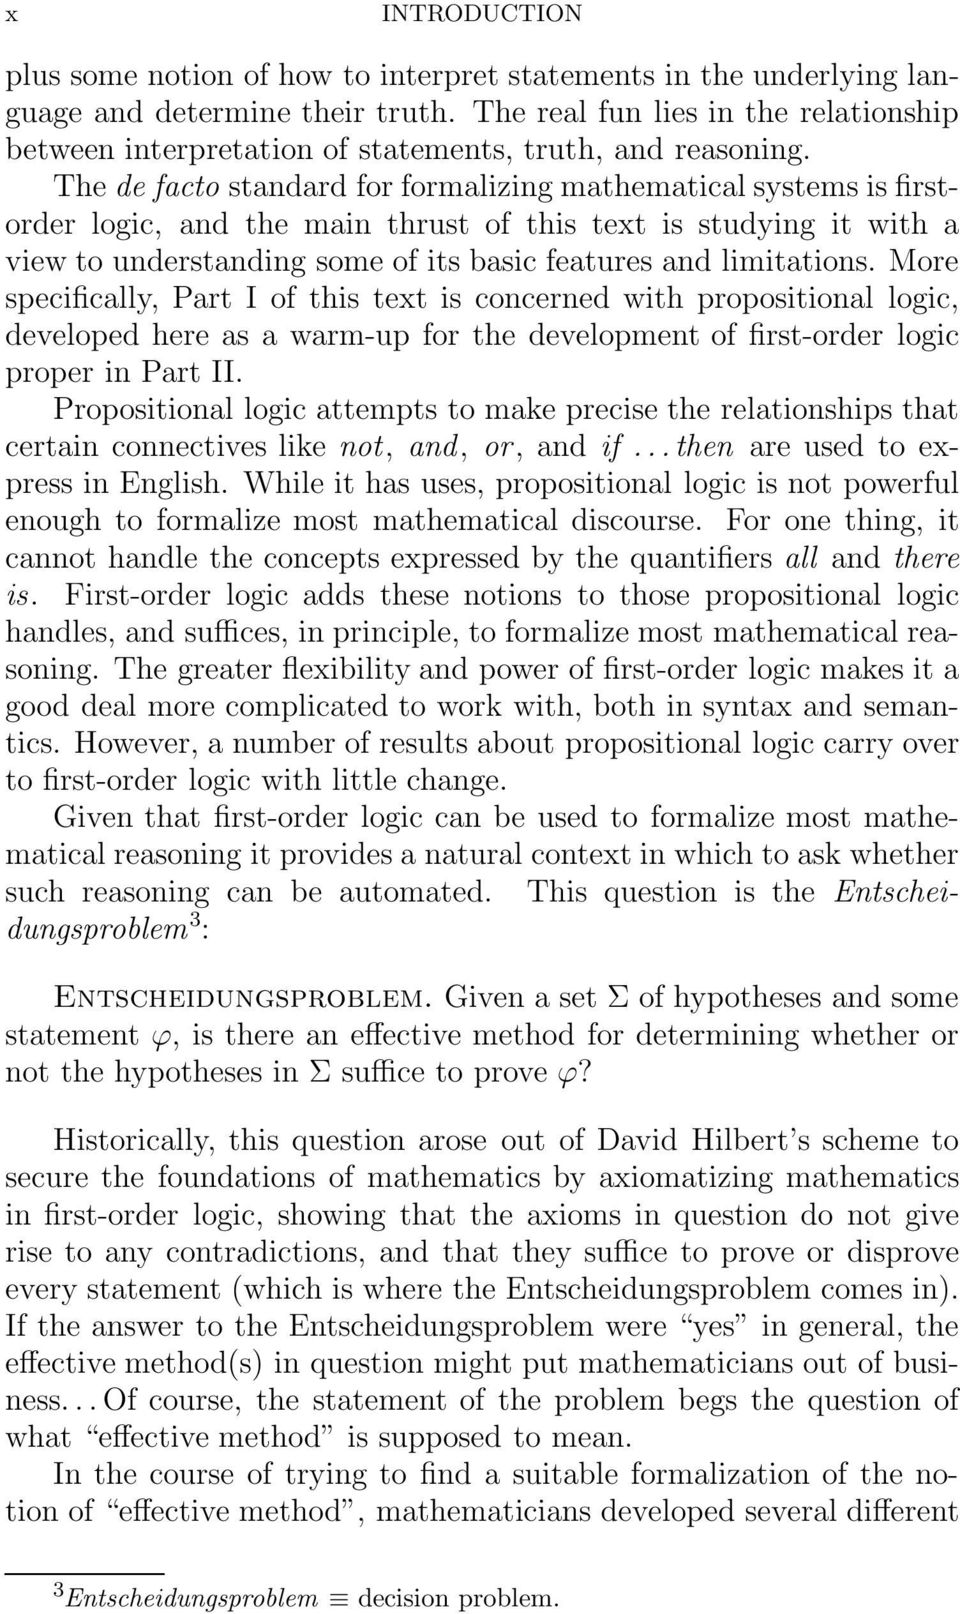 The de facto standard for formalizing mathematical systems is firstorder logic, and the main thrust of this text is studying it with a view to understanding some of its basic features and limitations.